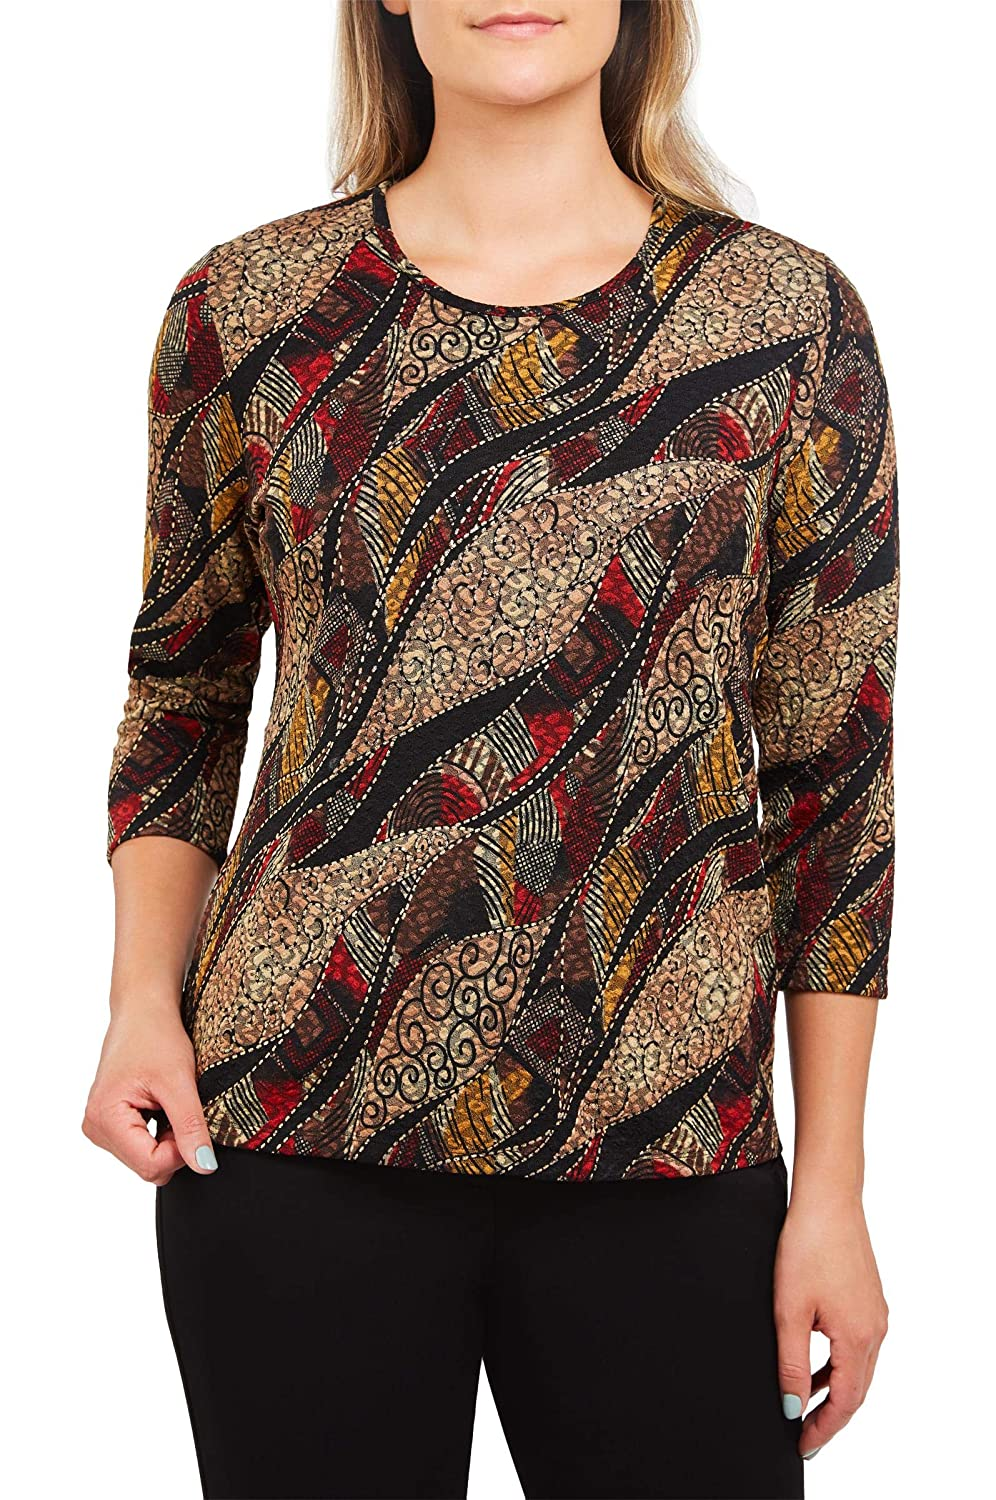 Plus Pucker Print Crew Neck Top Nygard 4R486870